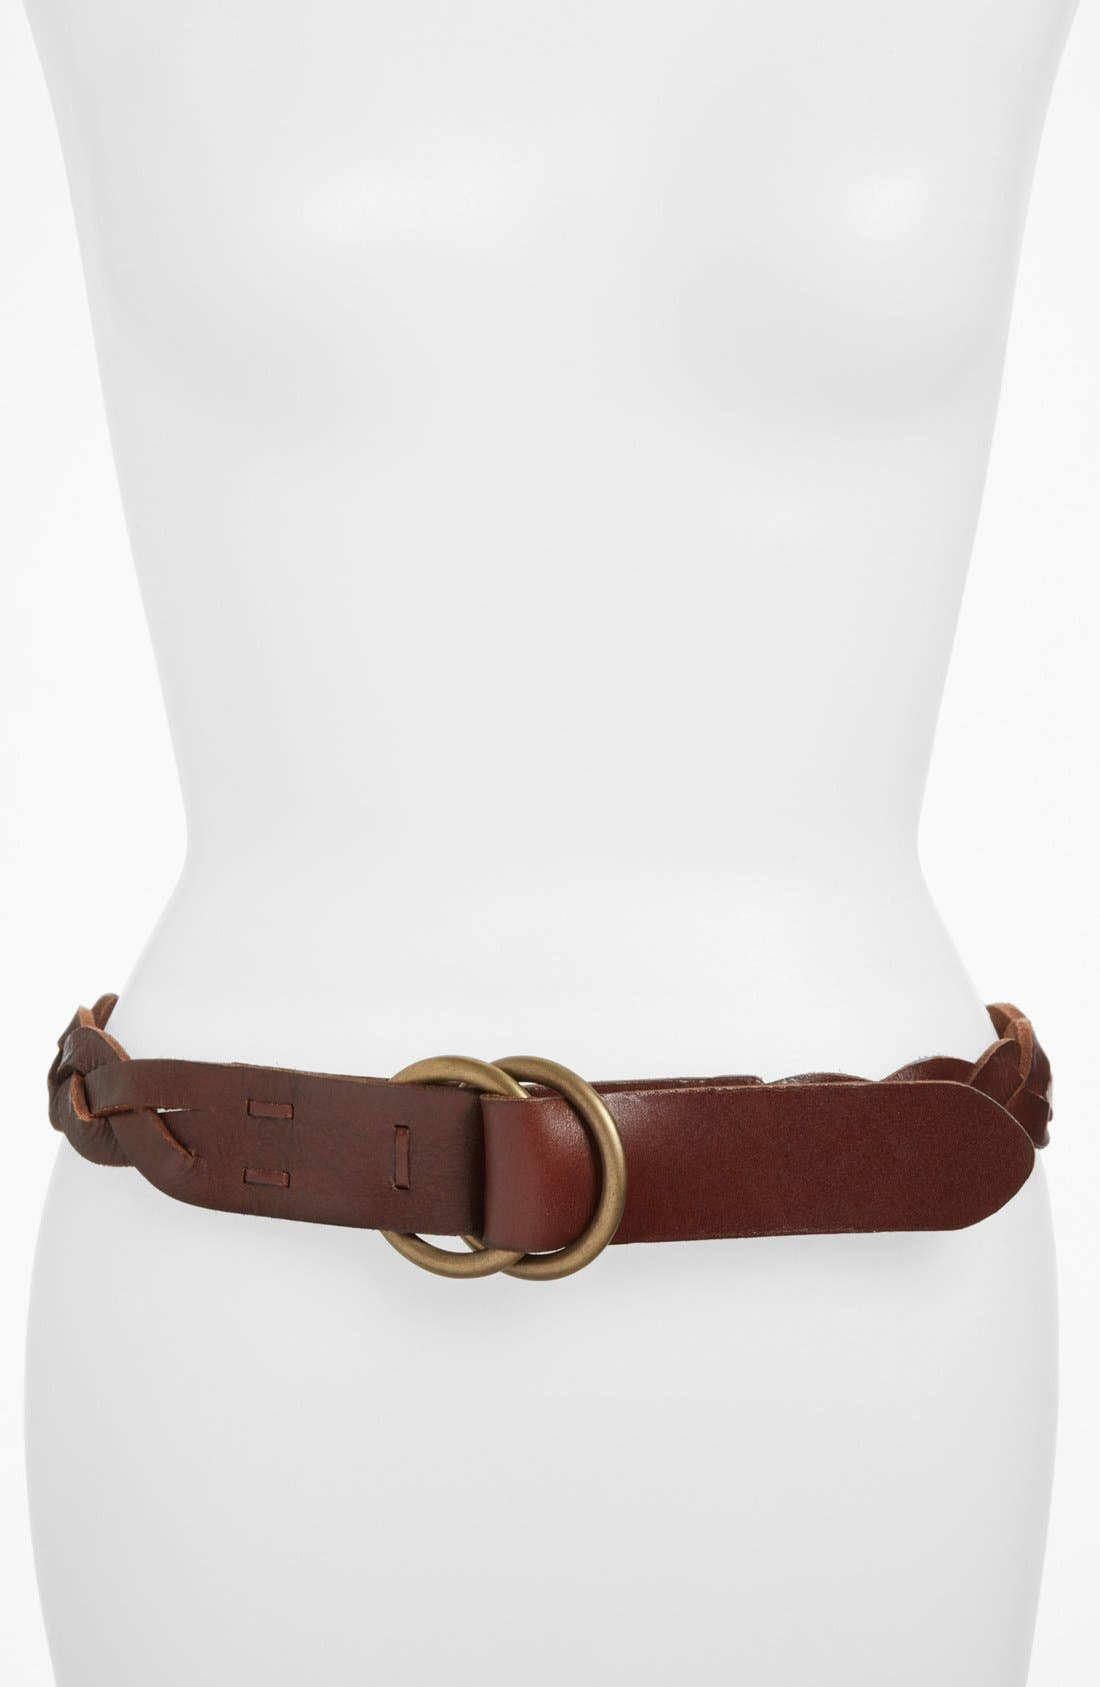 Main Image - Lauren Ralph Lauren 'Miracle Braid' Leather Belt